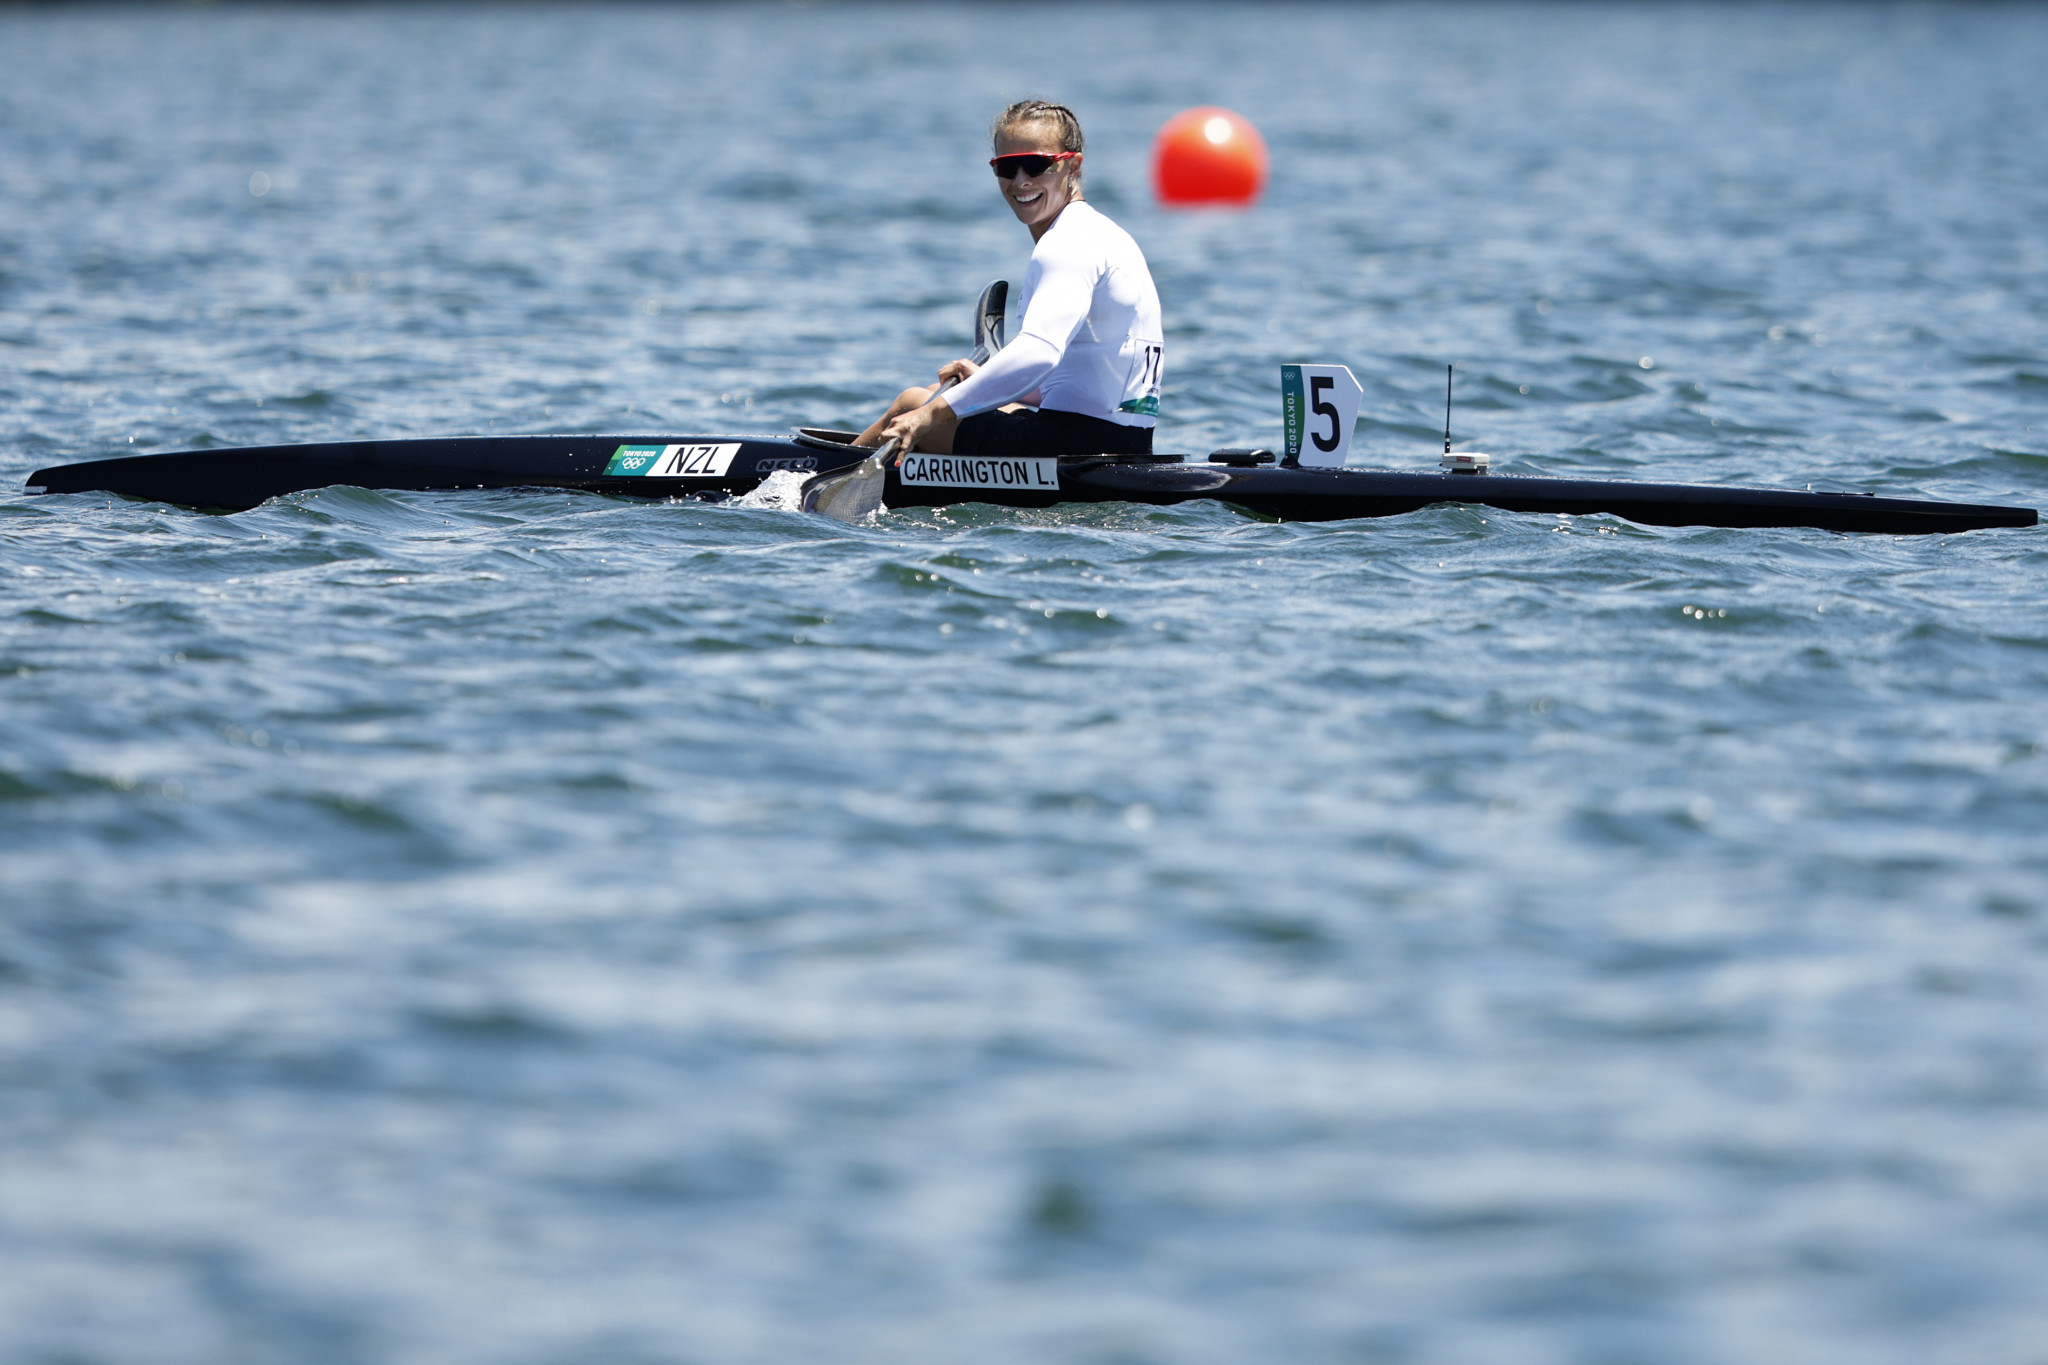 Lisa Carrington won two Olympic gold medals in little more than an hour, with the New Zealander first taking the women's K1 200m crown and then teaming up with Caitlin Regal for K2 500m glory ©Getty Images